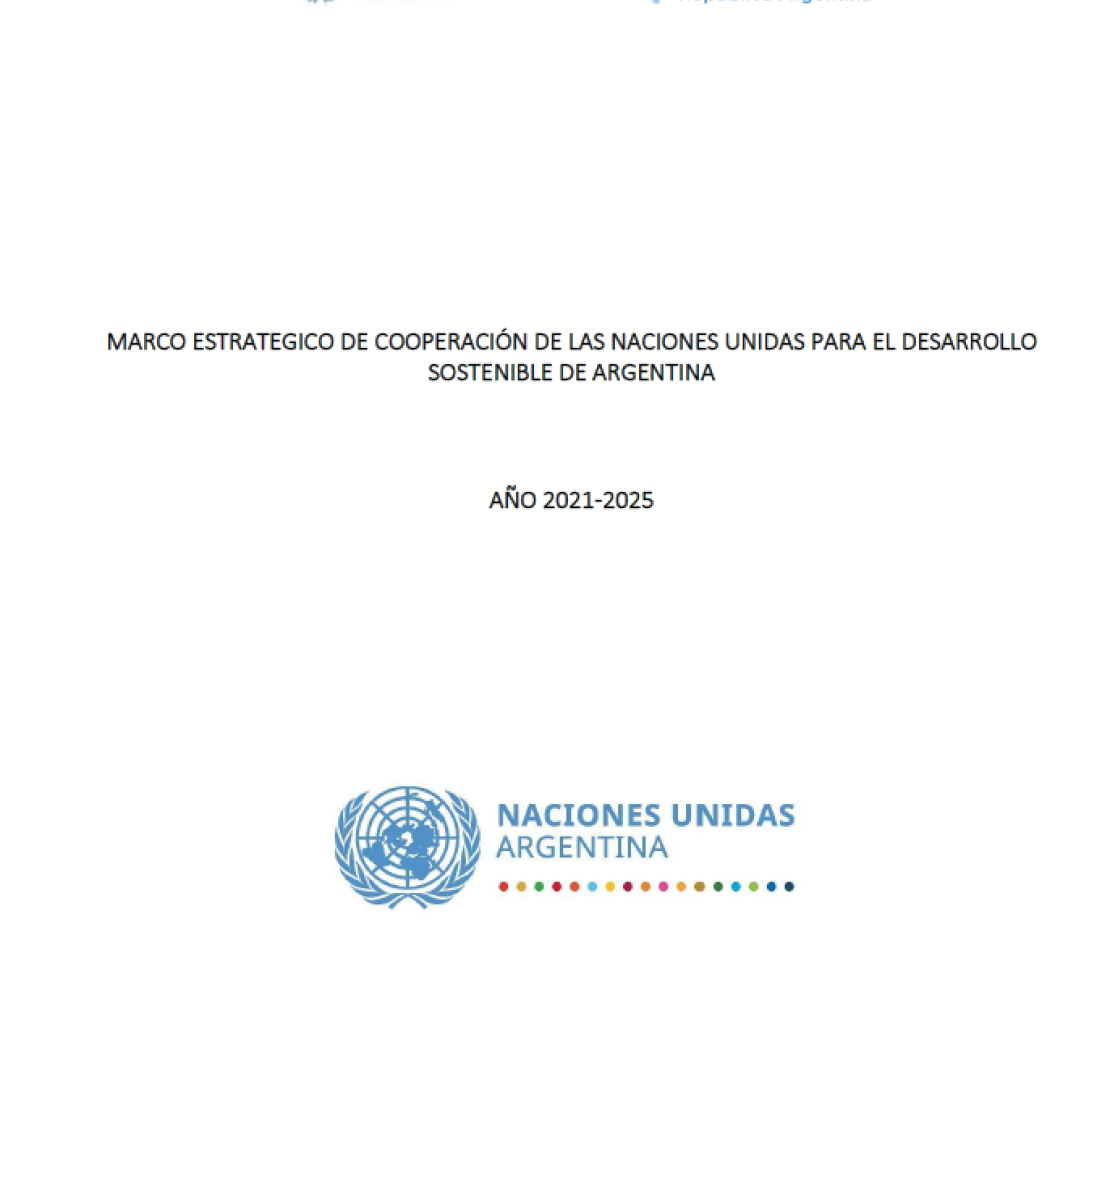 White background with blue text.  Features United Nations Argentina logo to the top left and the government of Argentina logo to the top right